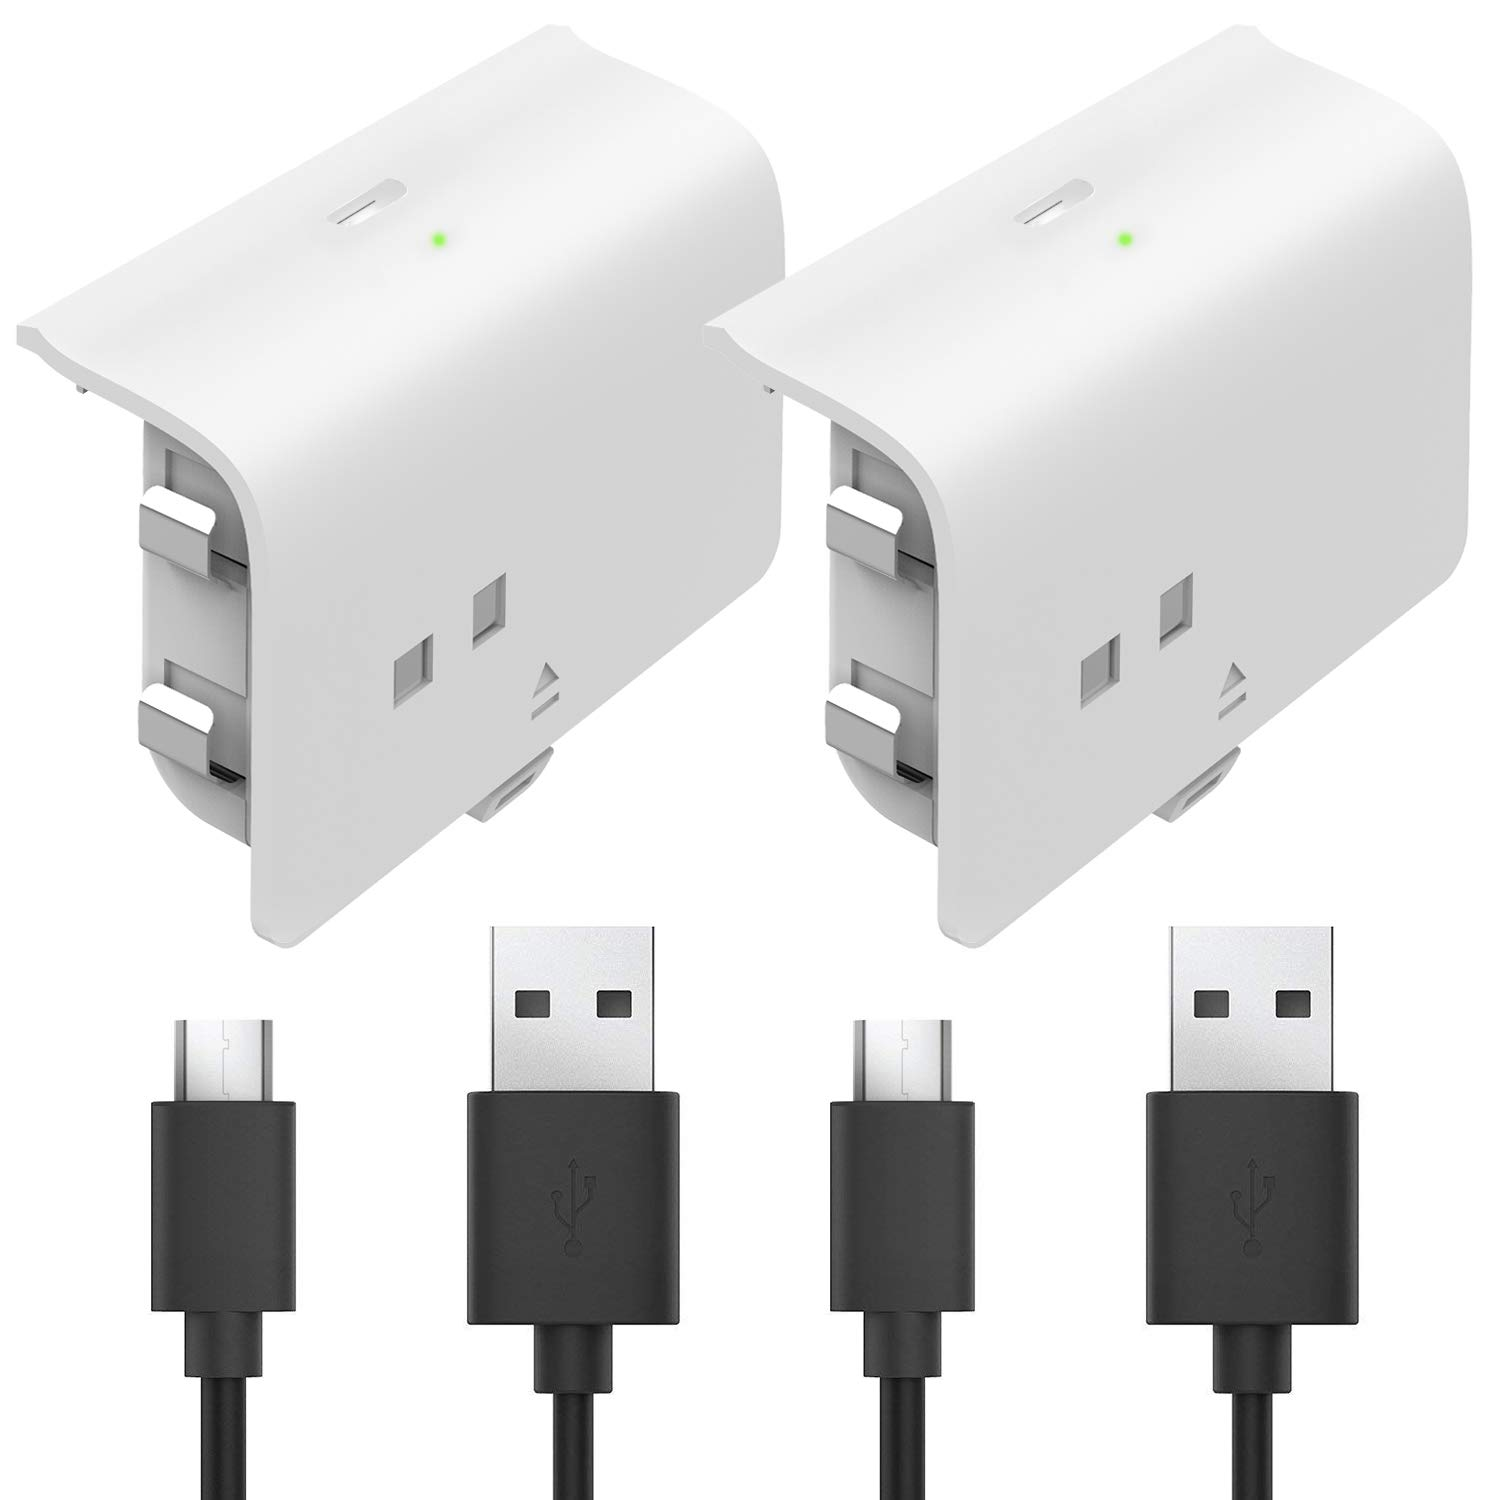 Fosmon Rechargeable Battery Pack Compatible with Xbox One/One X/One S Elite (Not for Xbox Series X/S 2020) Controller (2 Pack), Works with Fosmon Dock C-10659 / C-10709 / C-10738 / C-10751 - White